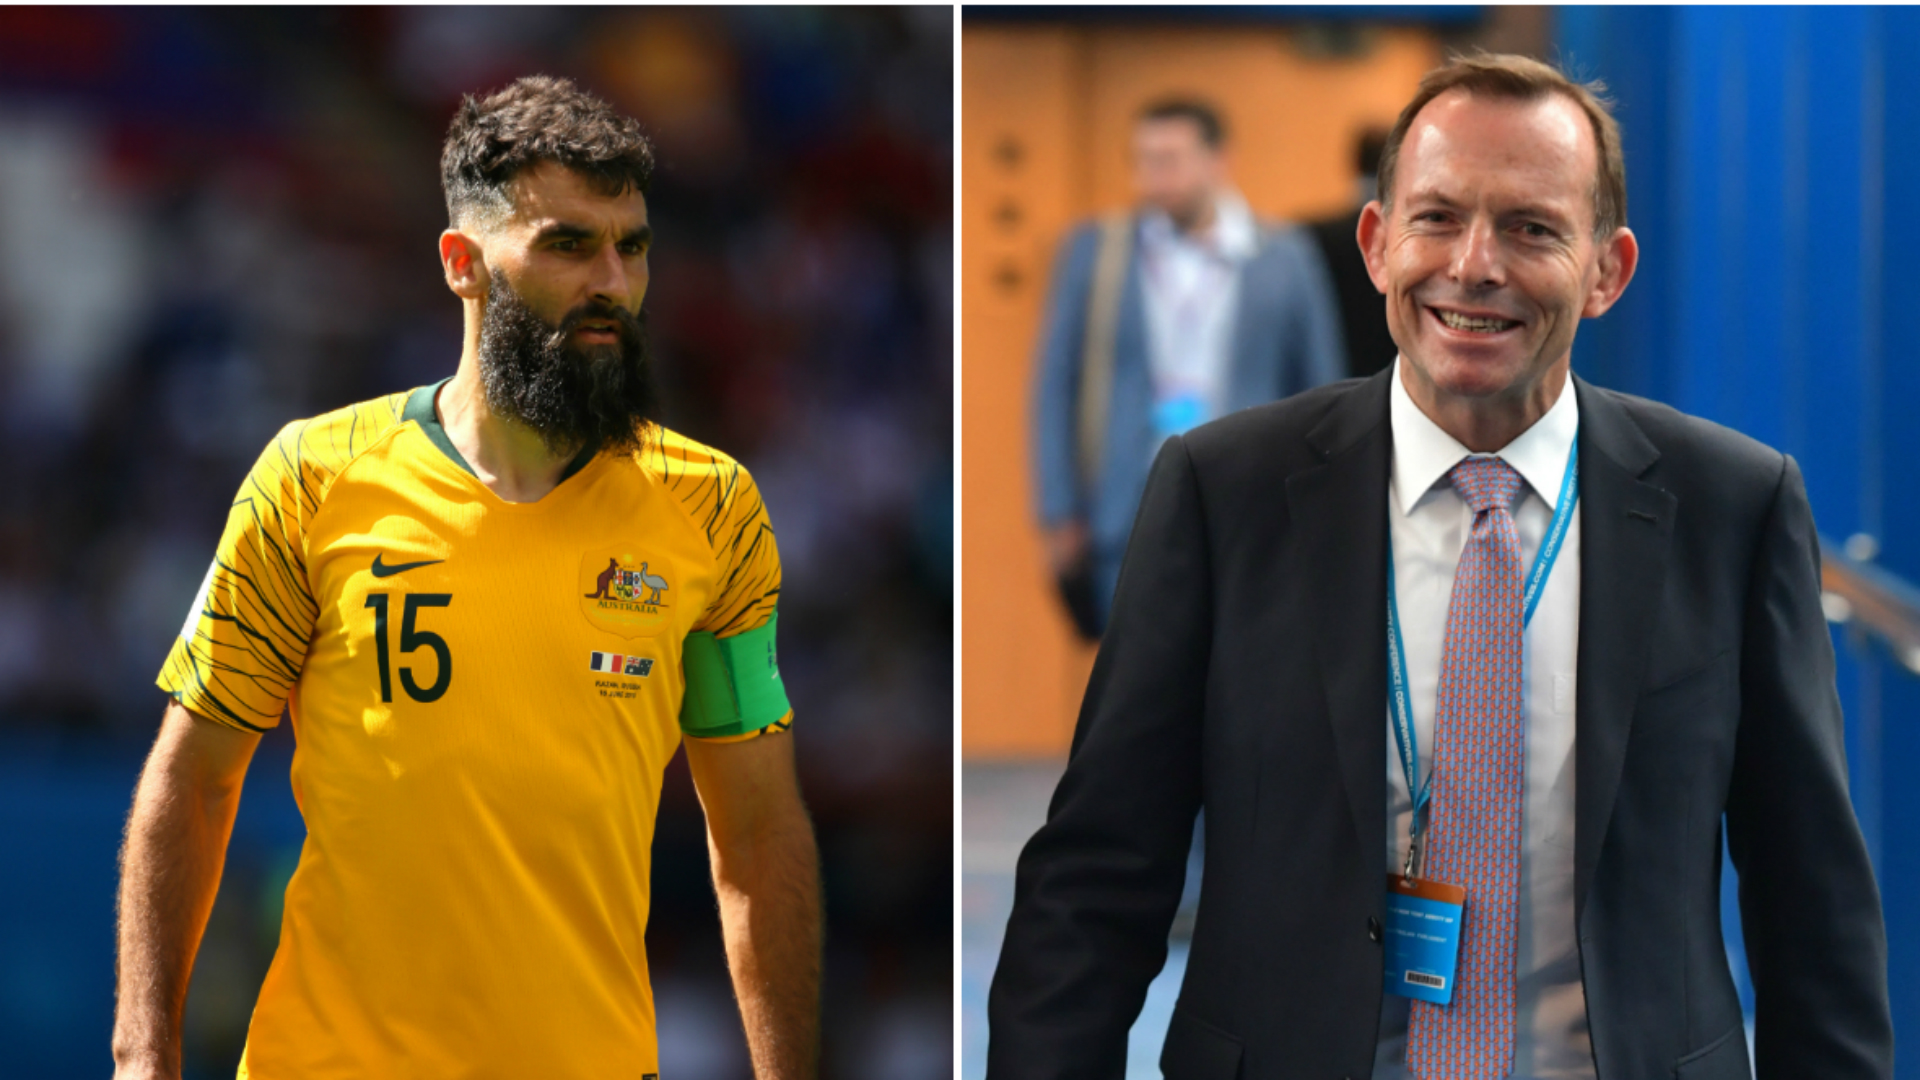 Optus to simulcast World Cup matches with SBS amid technical issues